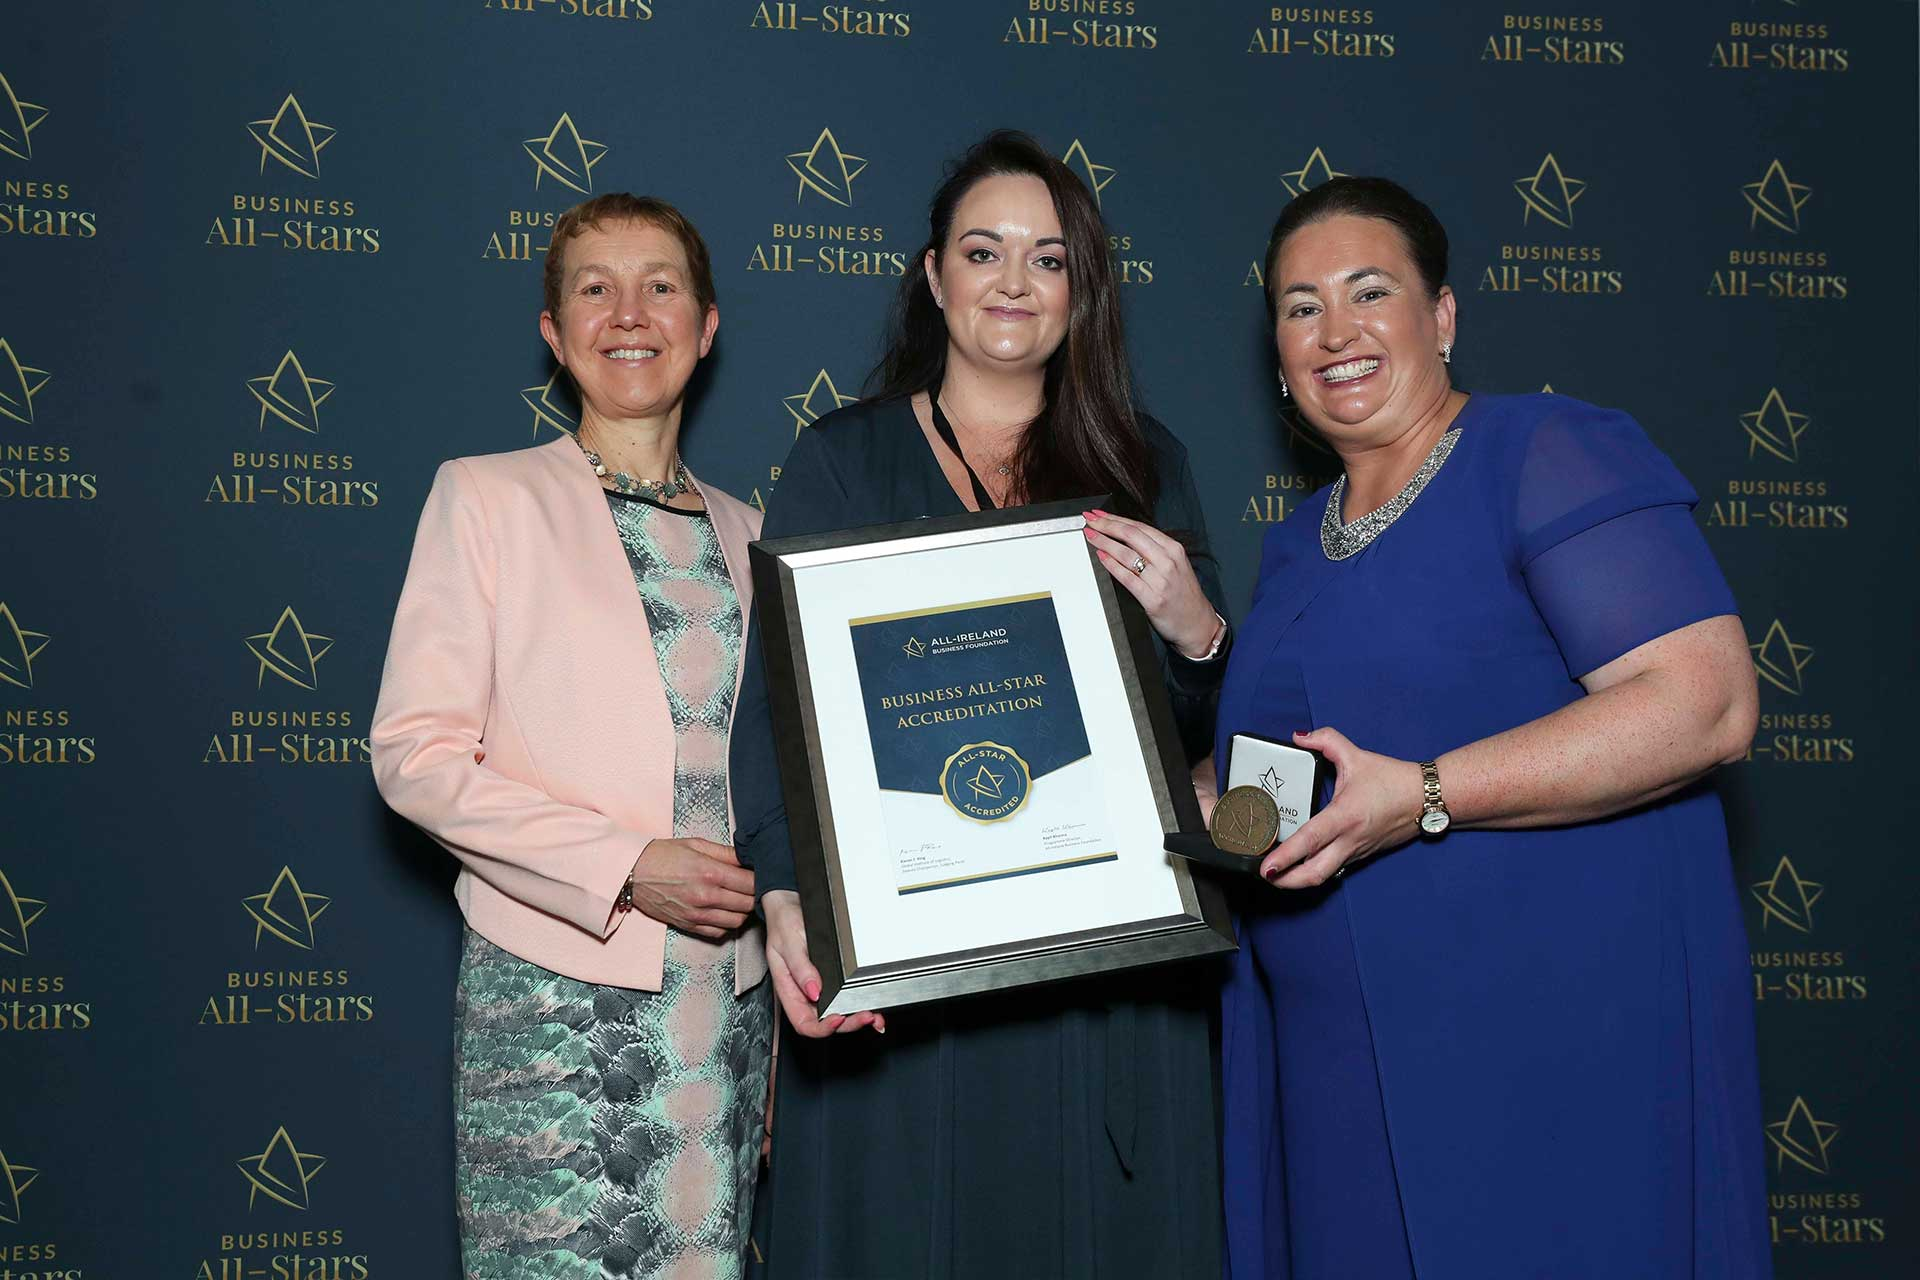 Denise Bennett White - Denises Beauty Clinic receiving Business All-Star Accreditation at Croke Park from Dr Briga Hynes, Kemmy Business School, University of Limerick and Elaine Carroll CEO, All-Ireland Business Foundation.